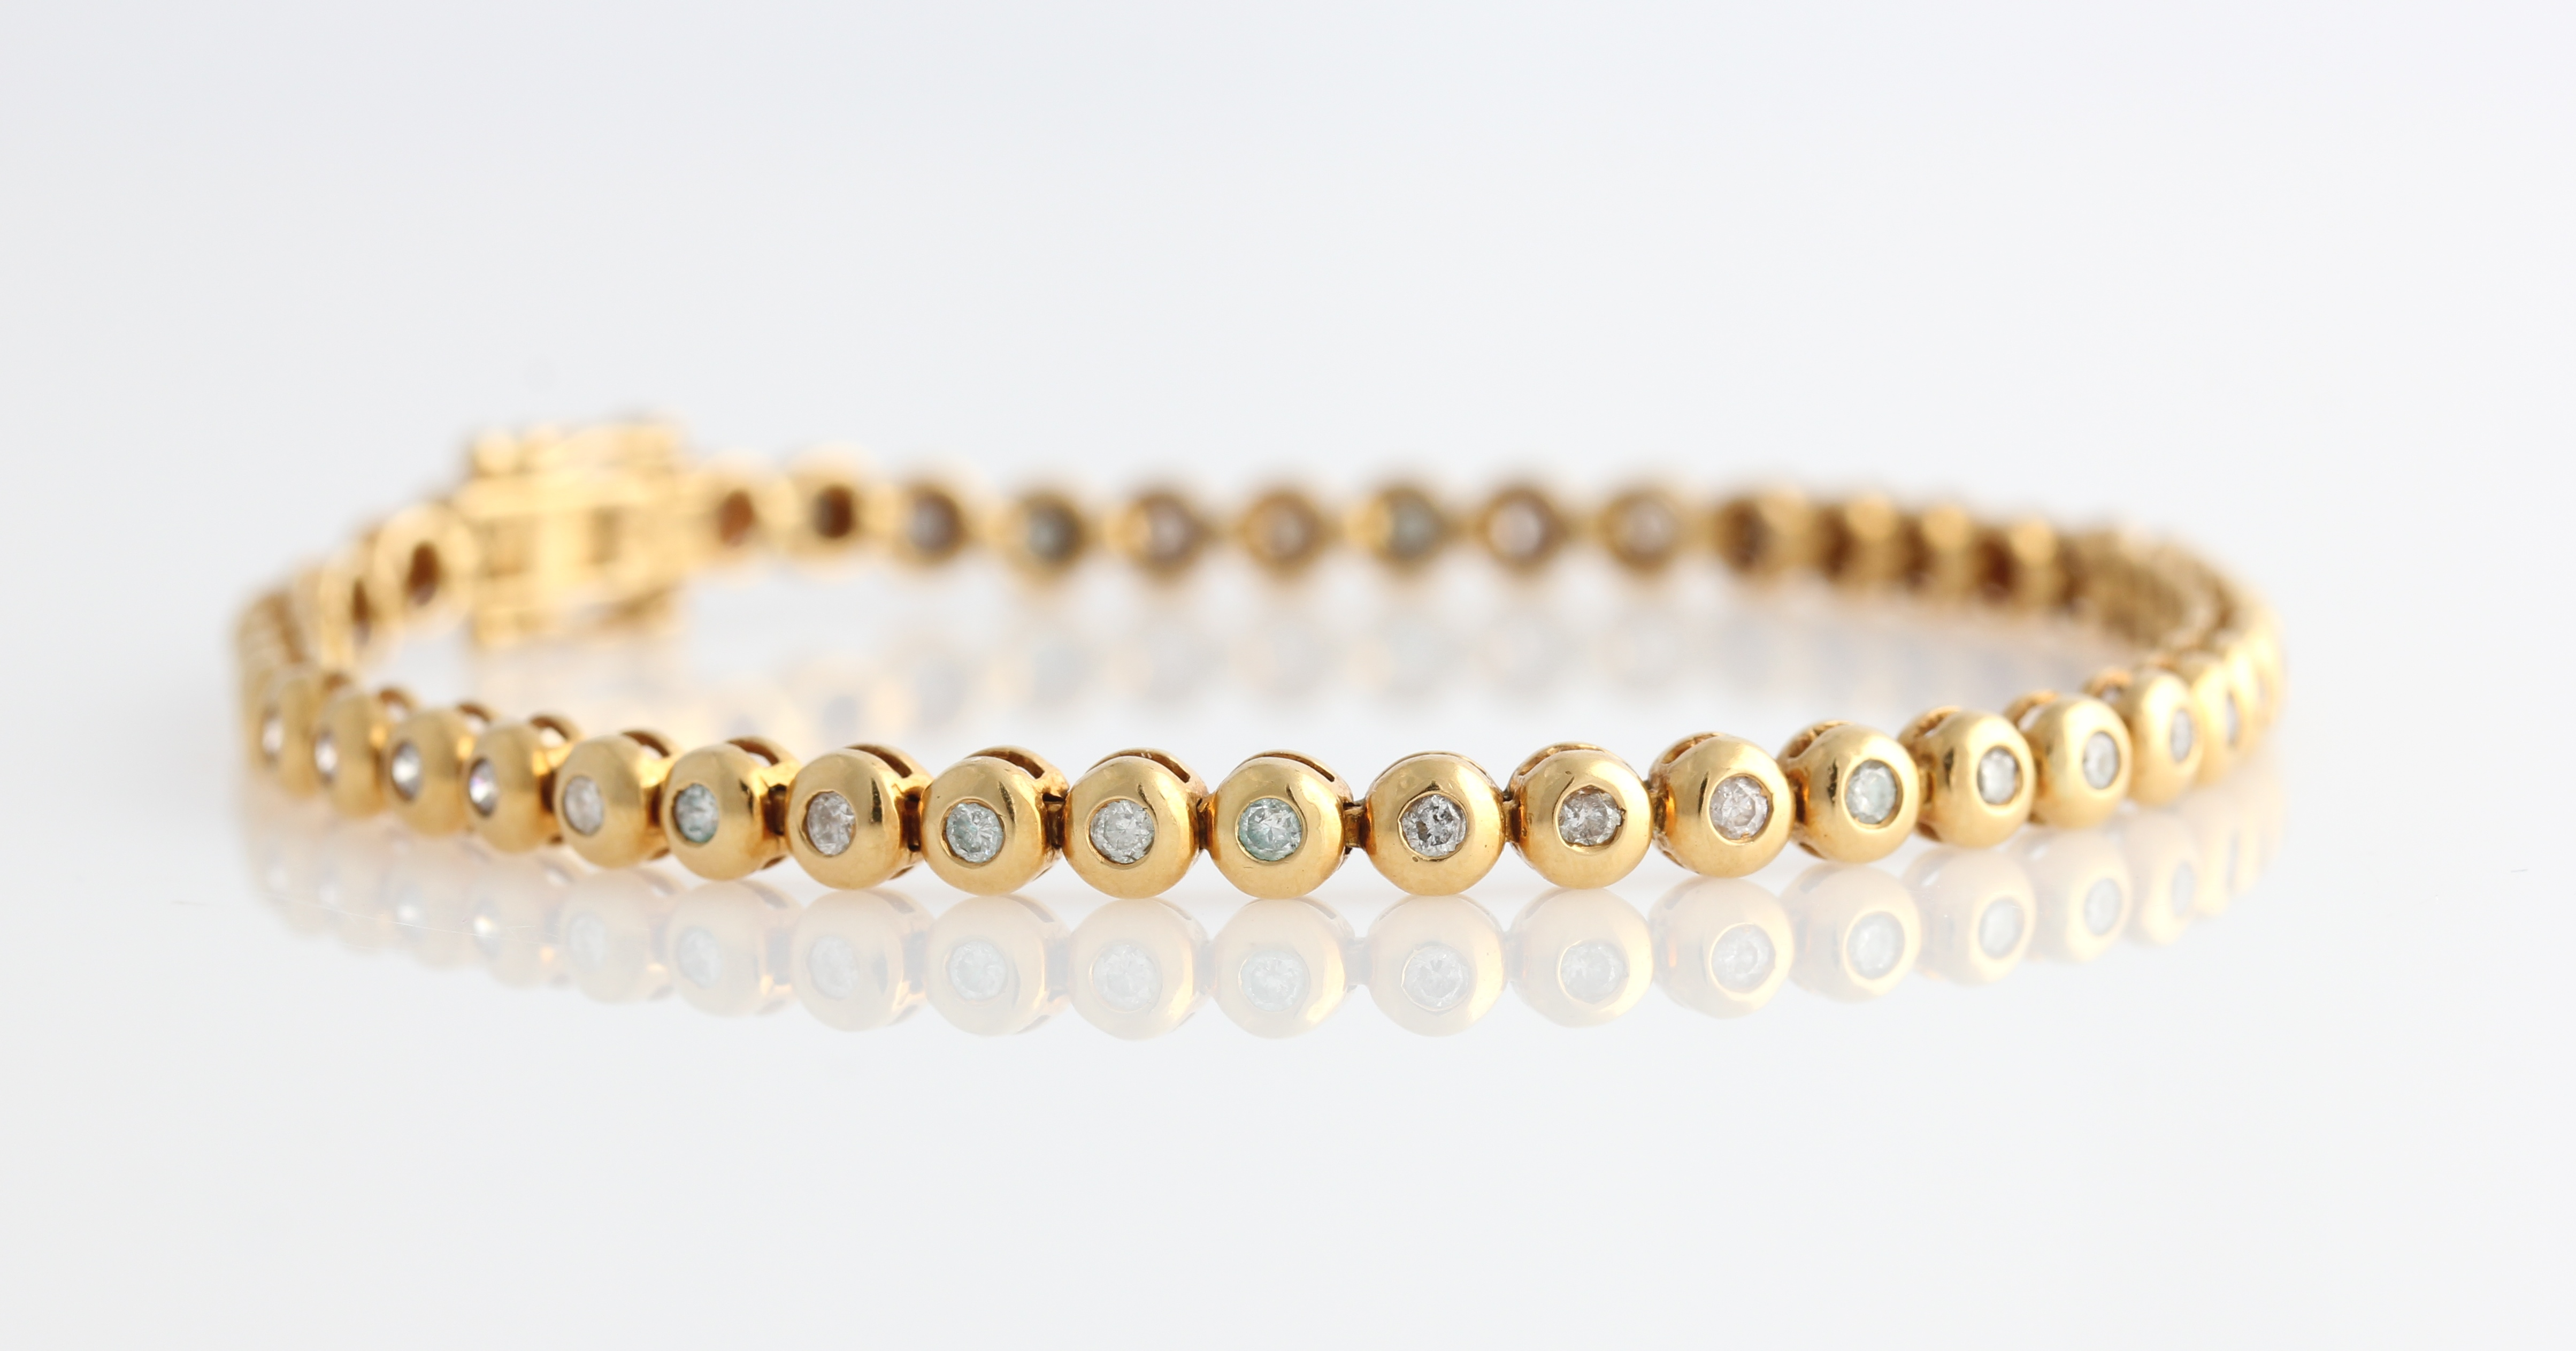 Lot 50 - A hallmarked 18ct yellow gold diamond tennis bracelet, each articulated circular link set with a